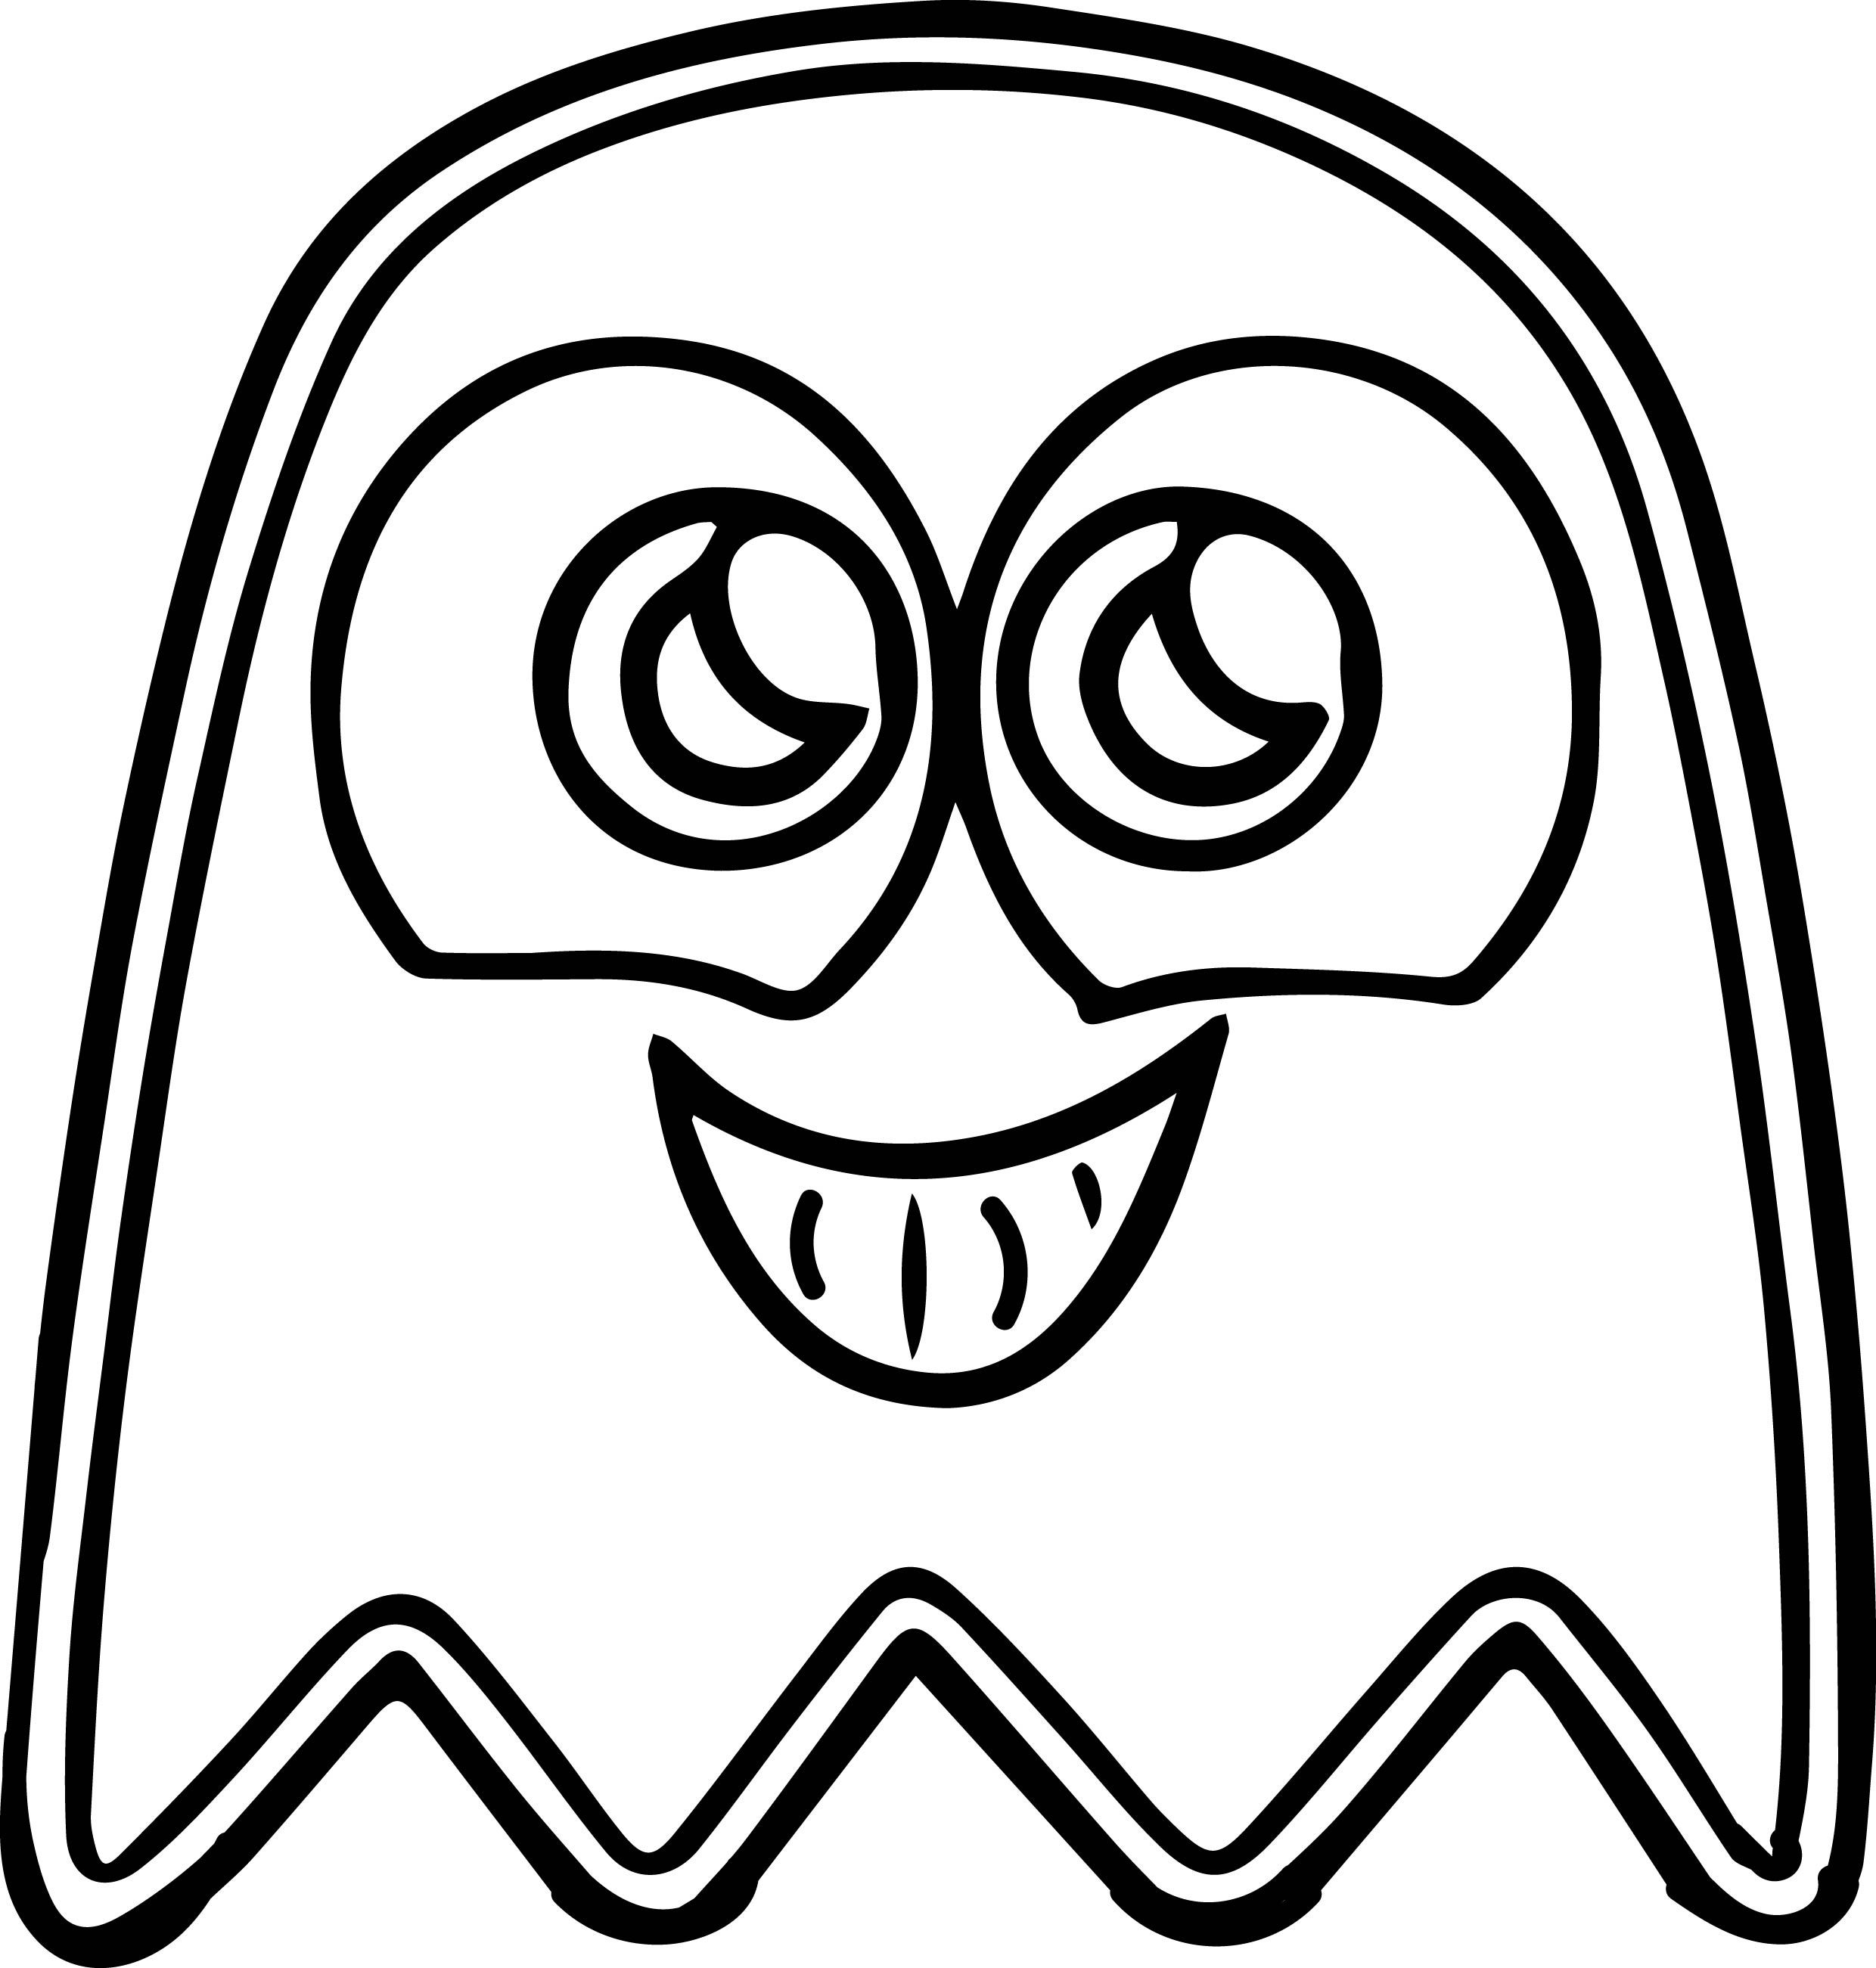 cool Pacman Cute Ghost Coloring Page | Cute ghost, Coloring ...